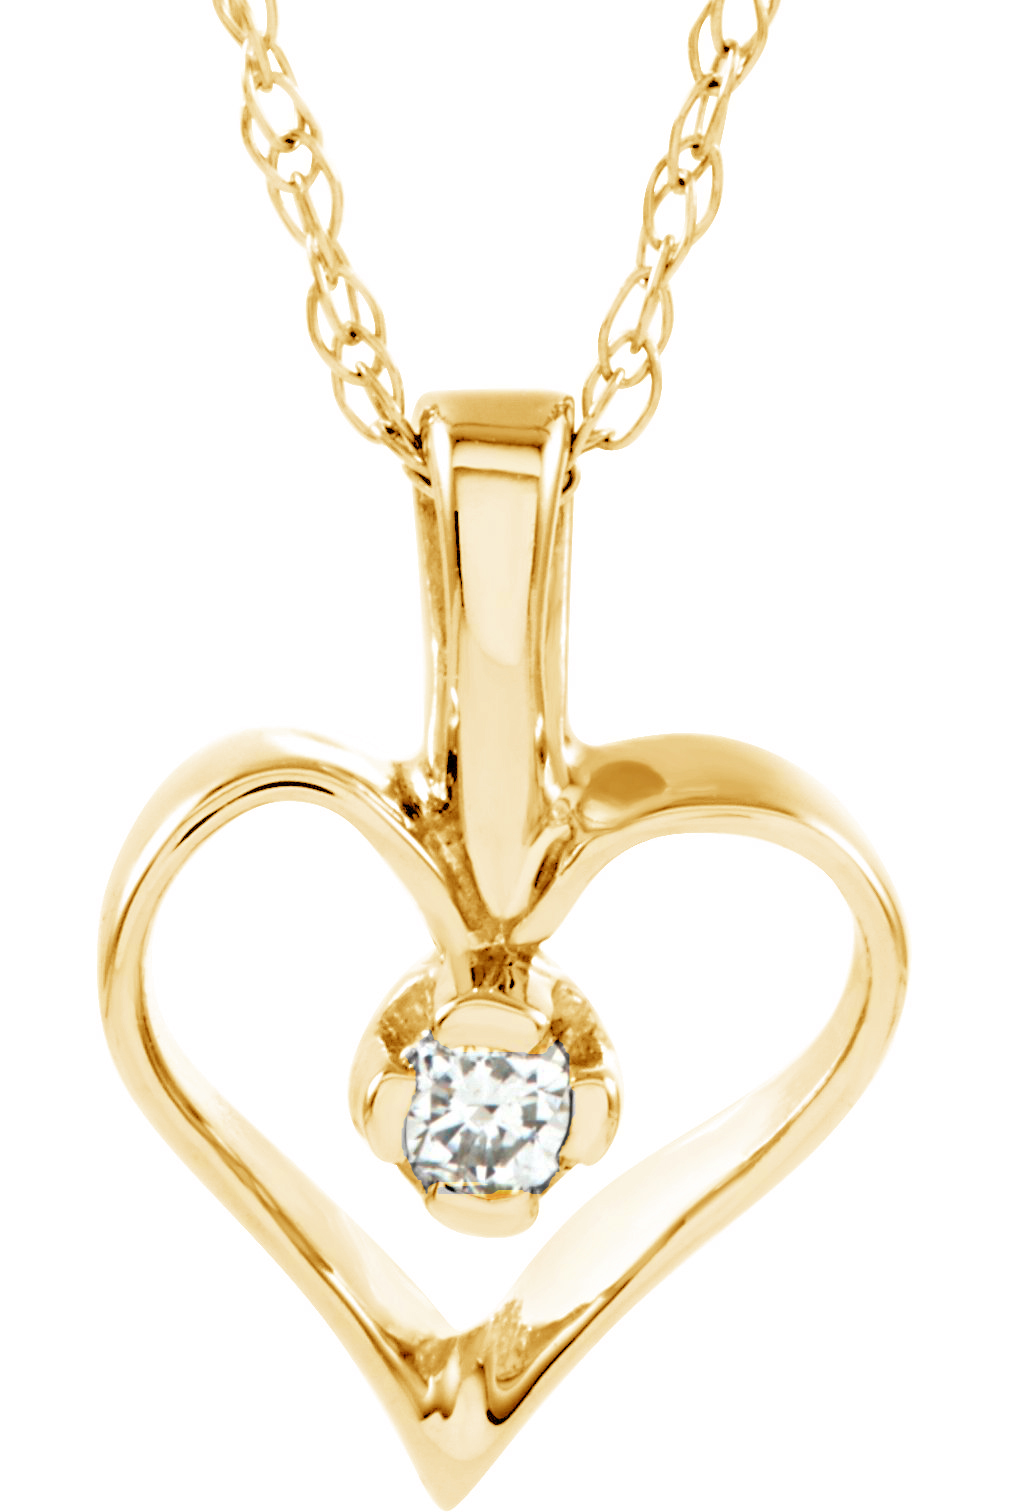 Diamond heart pendant necklace boomer style magazineboomer style petite 14k yellow gold diamond heart necklace aloadofball Images